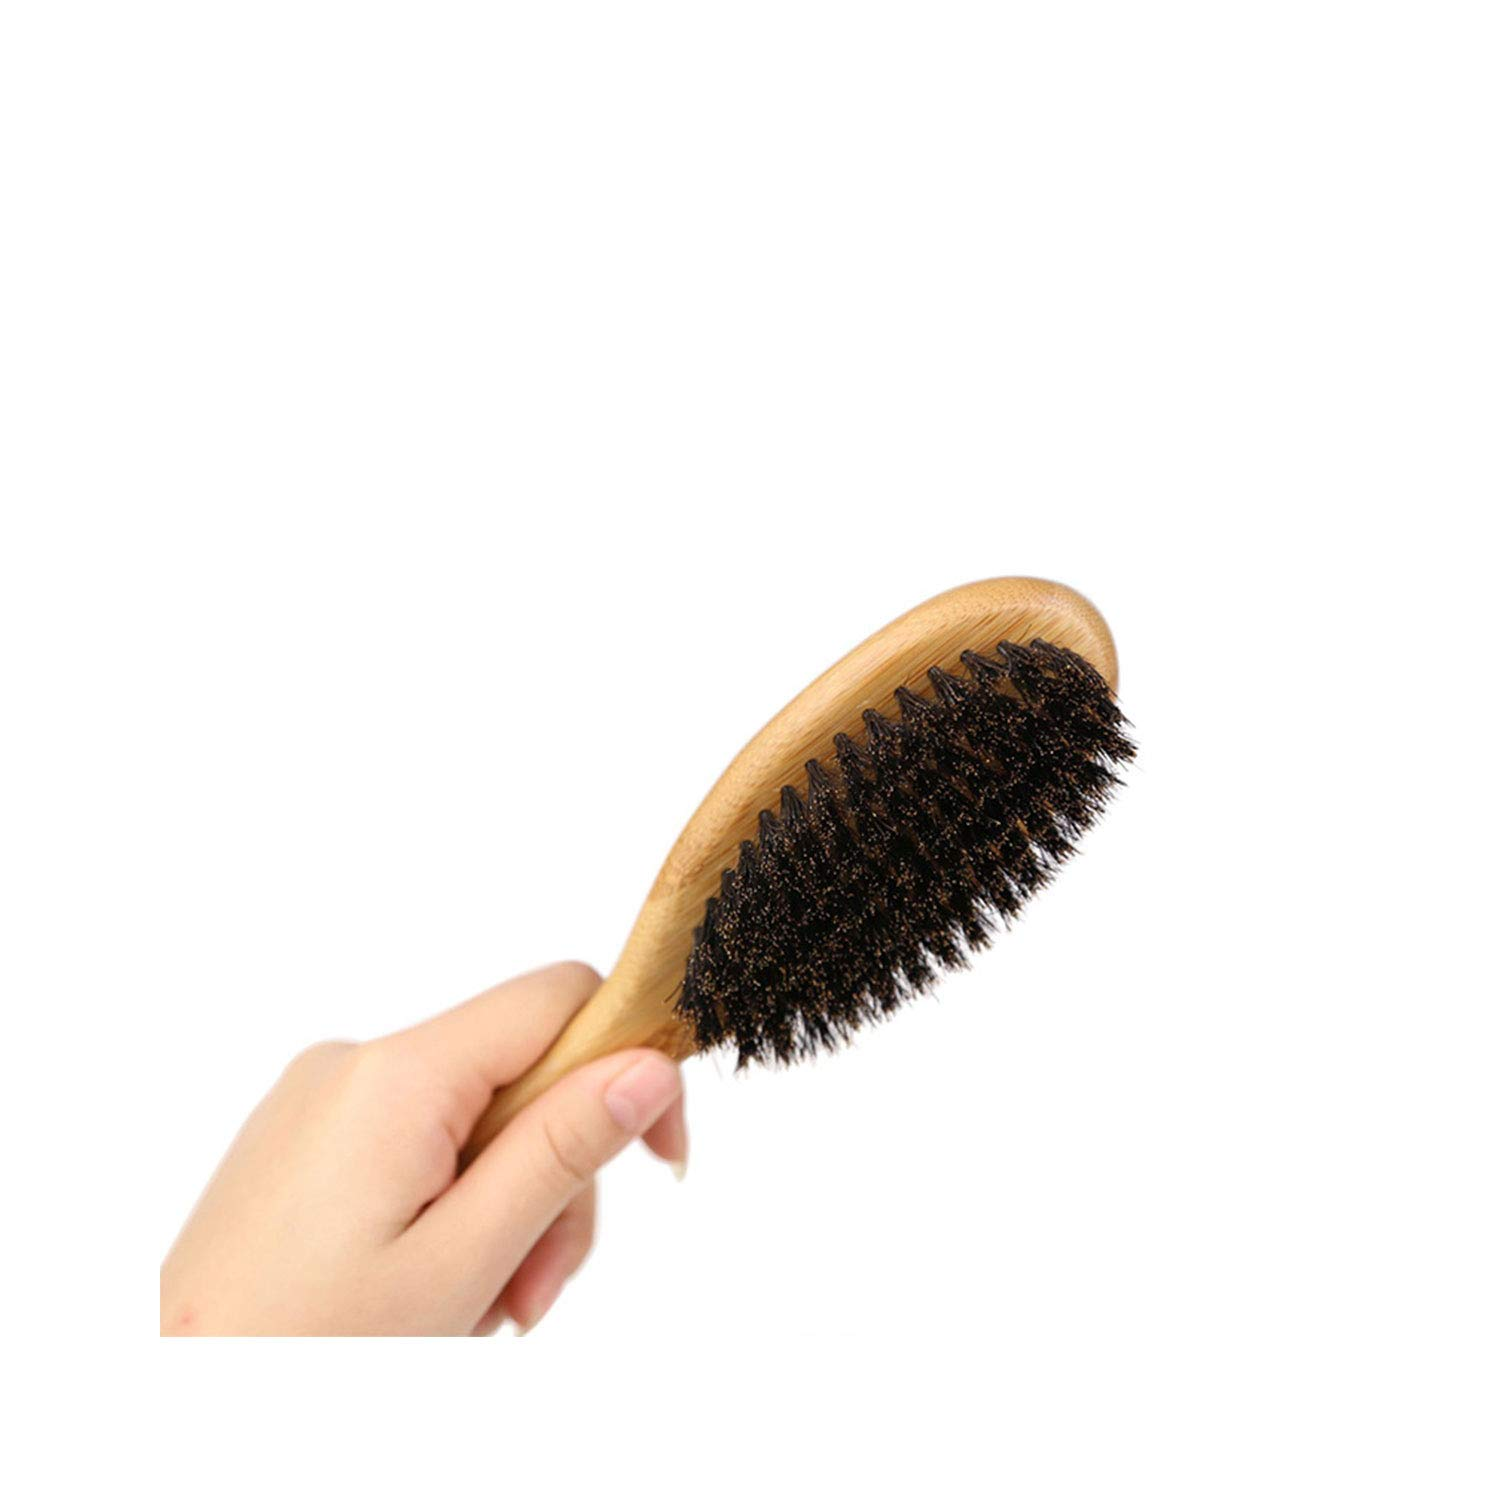 TJMWL Wooden Dog Hair Hair Removal Brush Smooth Finish Beauty Brush Dog Hair Hair Removal Tool Suitable for Large, Medium and Small pet Hair Removal Device